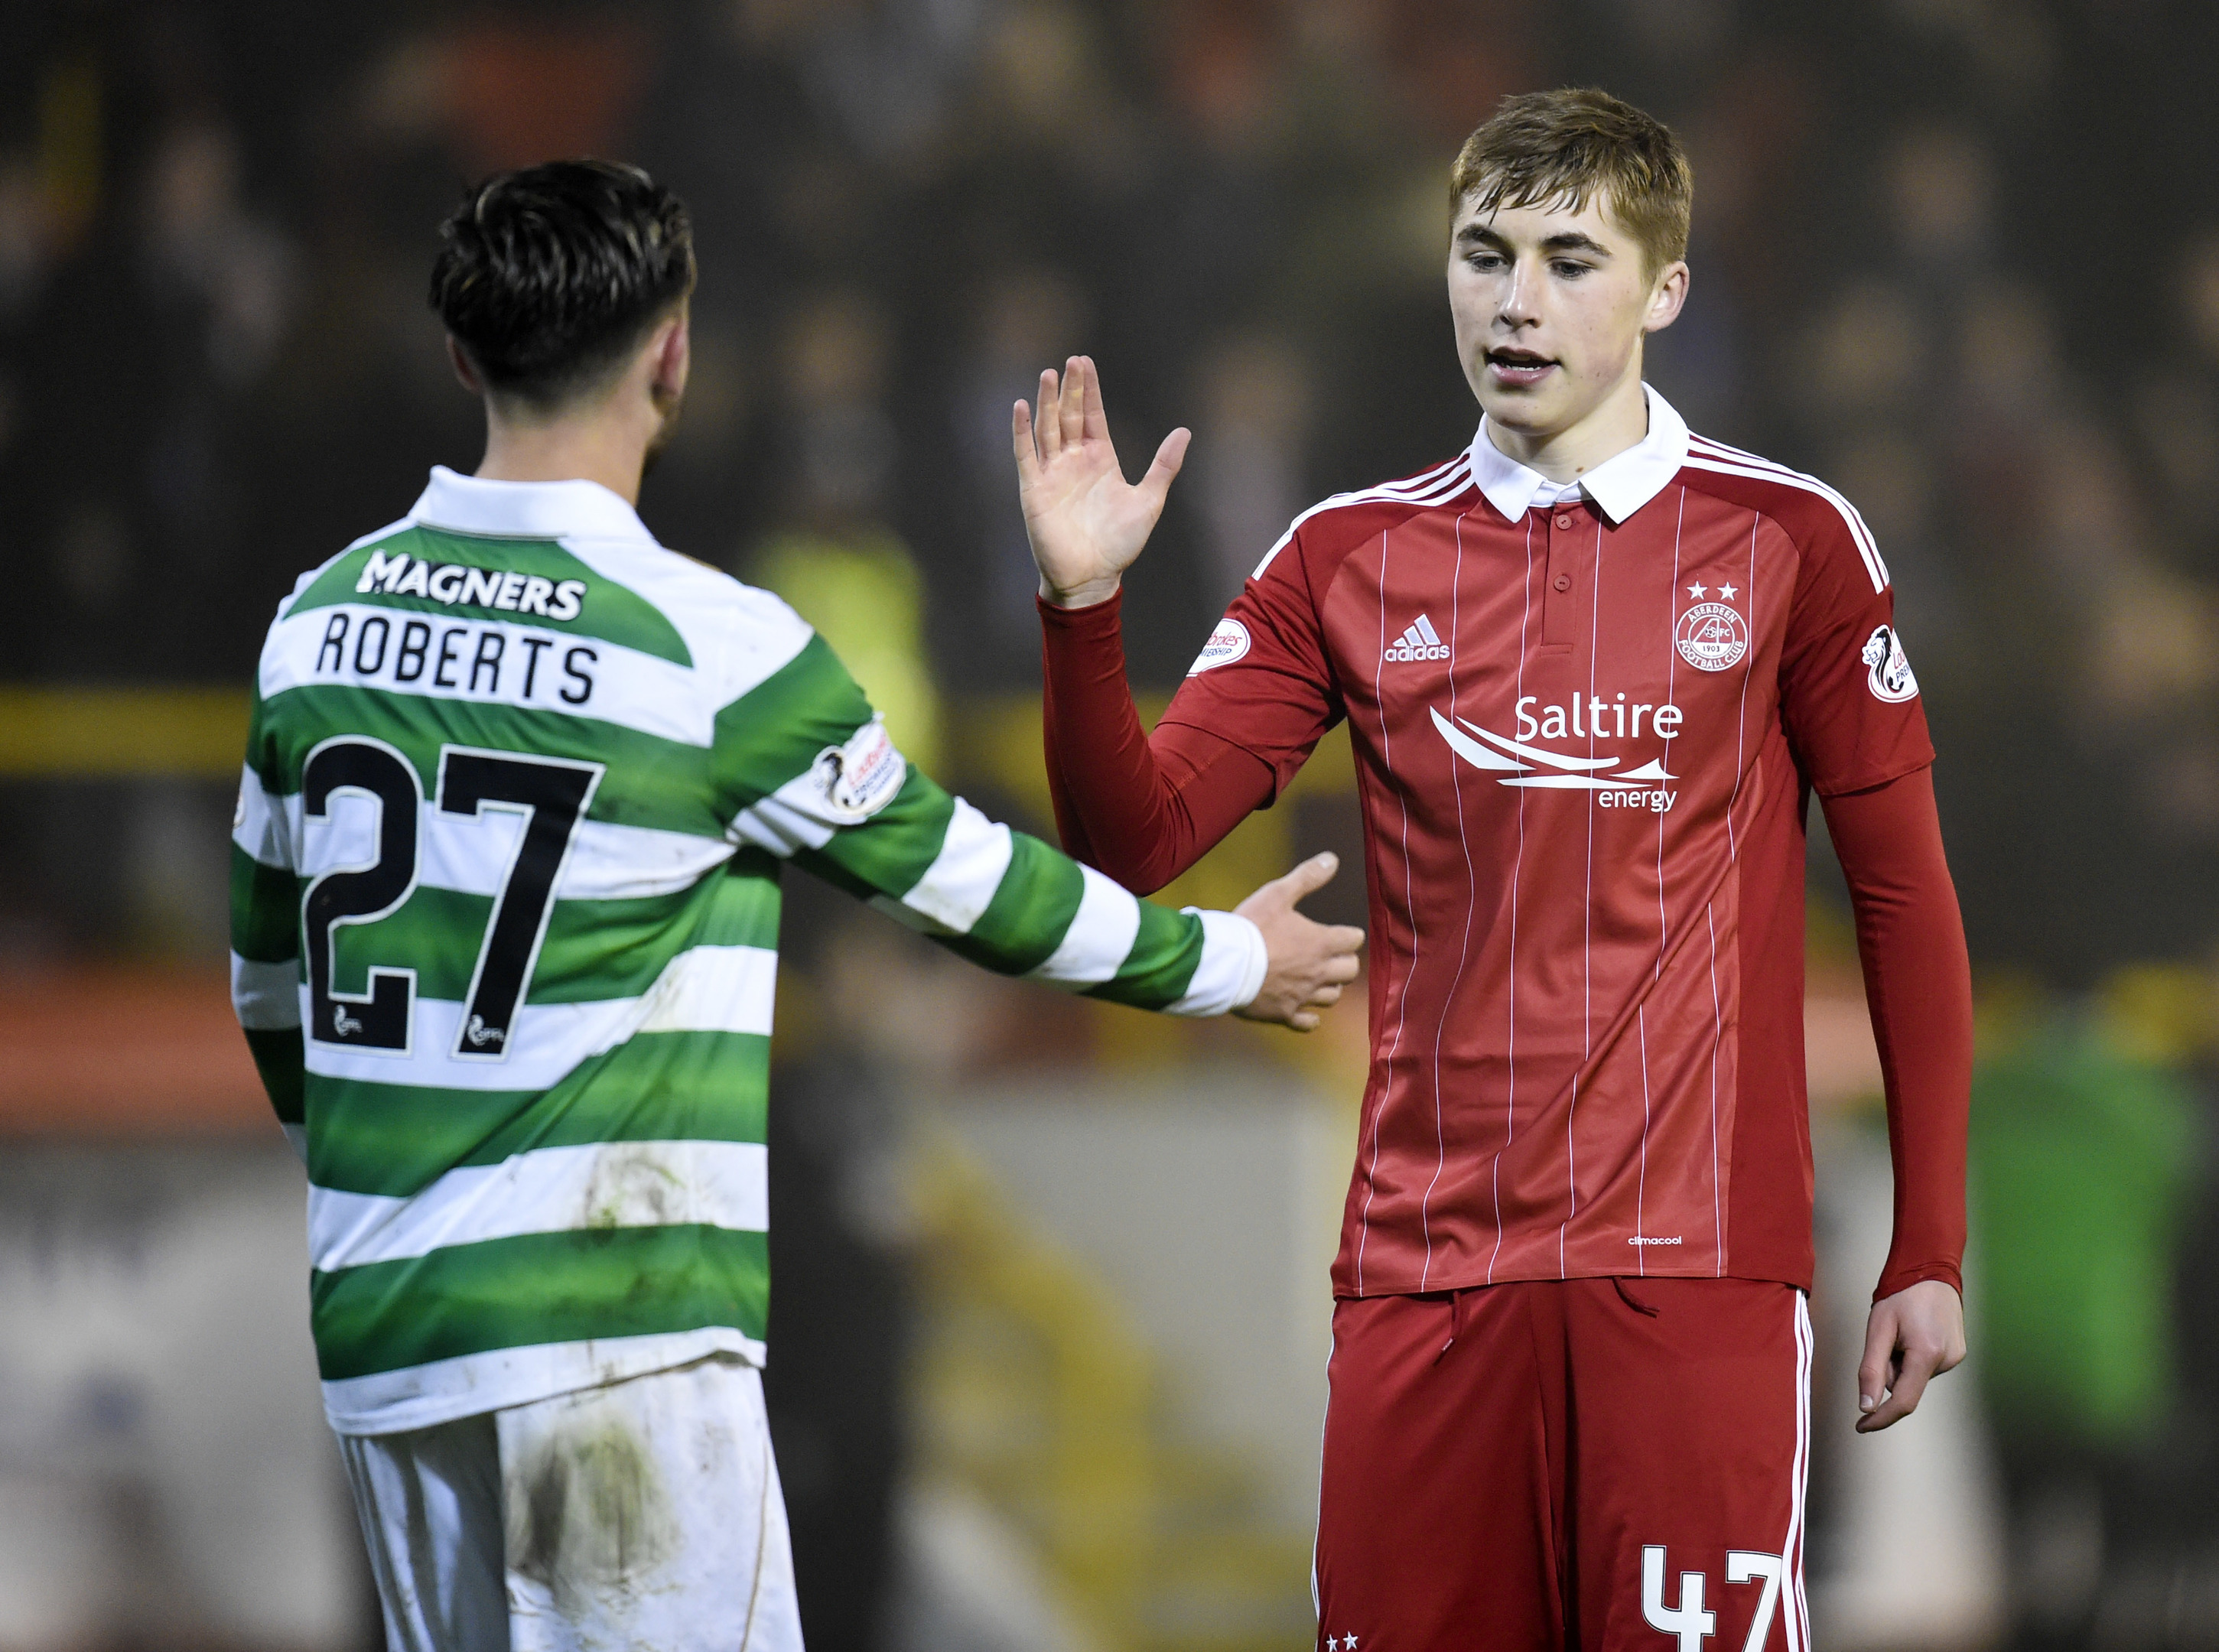 Aberdeen's Dean Campbell (right) with Patrick Roberts at full-time